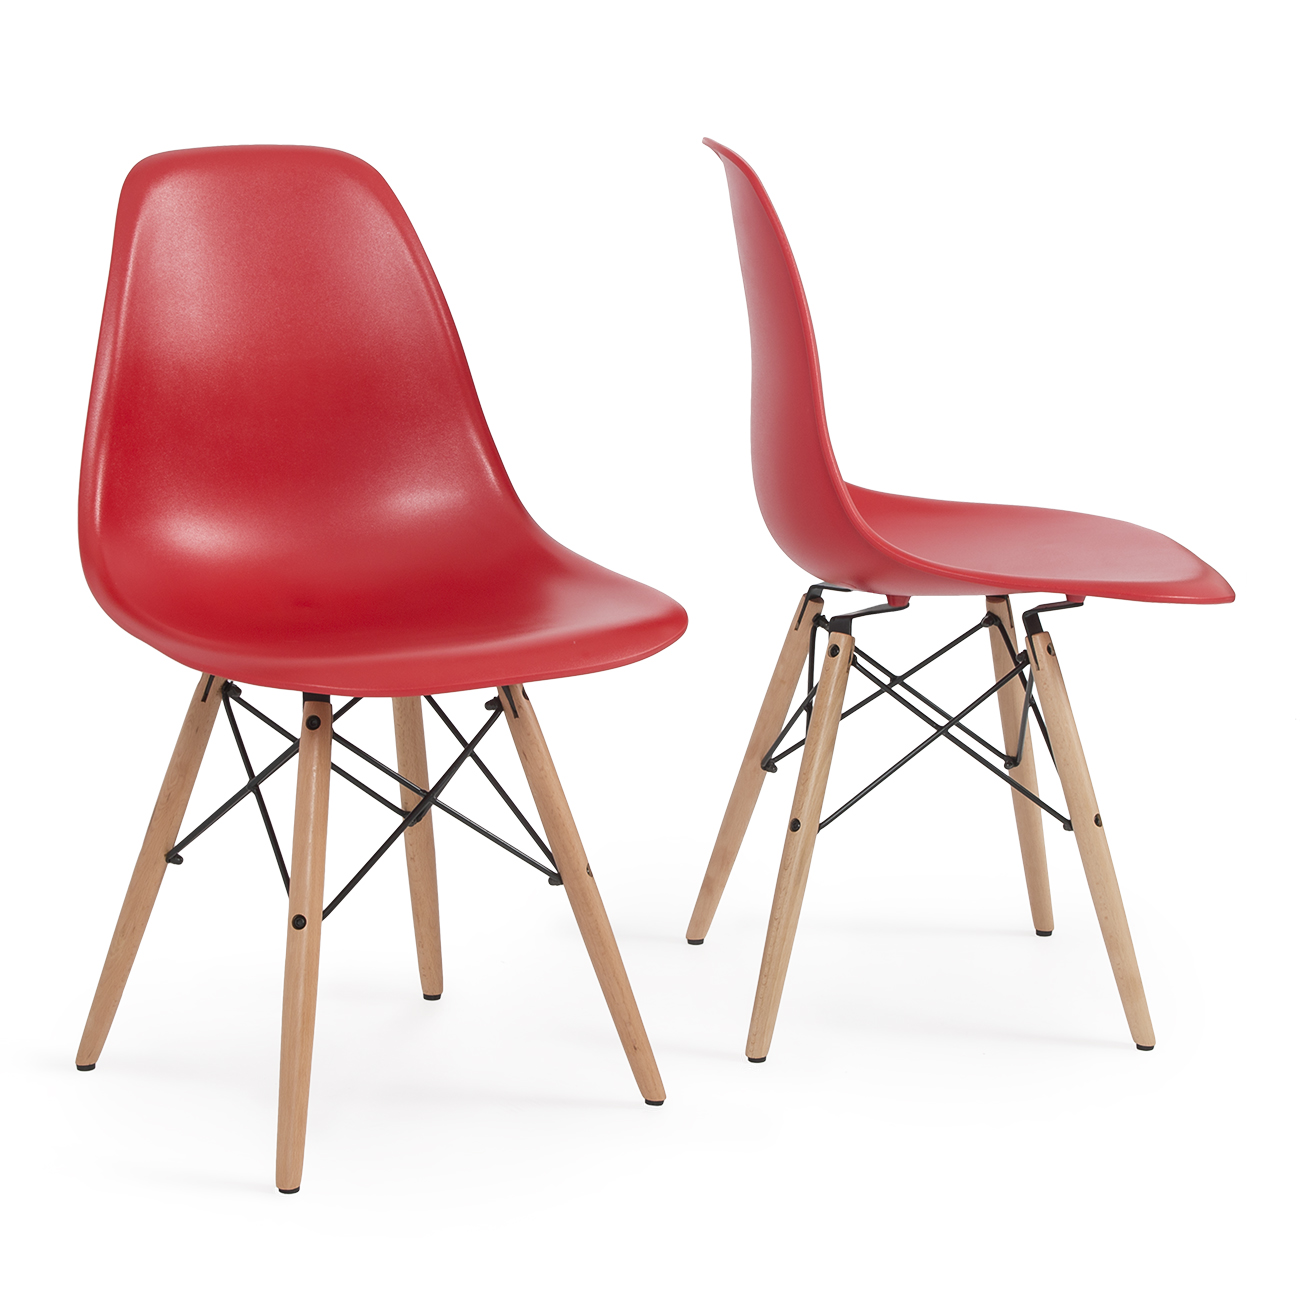 style dsw wood base mid century modern shell dining side chair set of 2 ebay. Black Bedroom Furniture Sets. Home Design Ideas